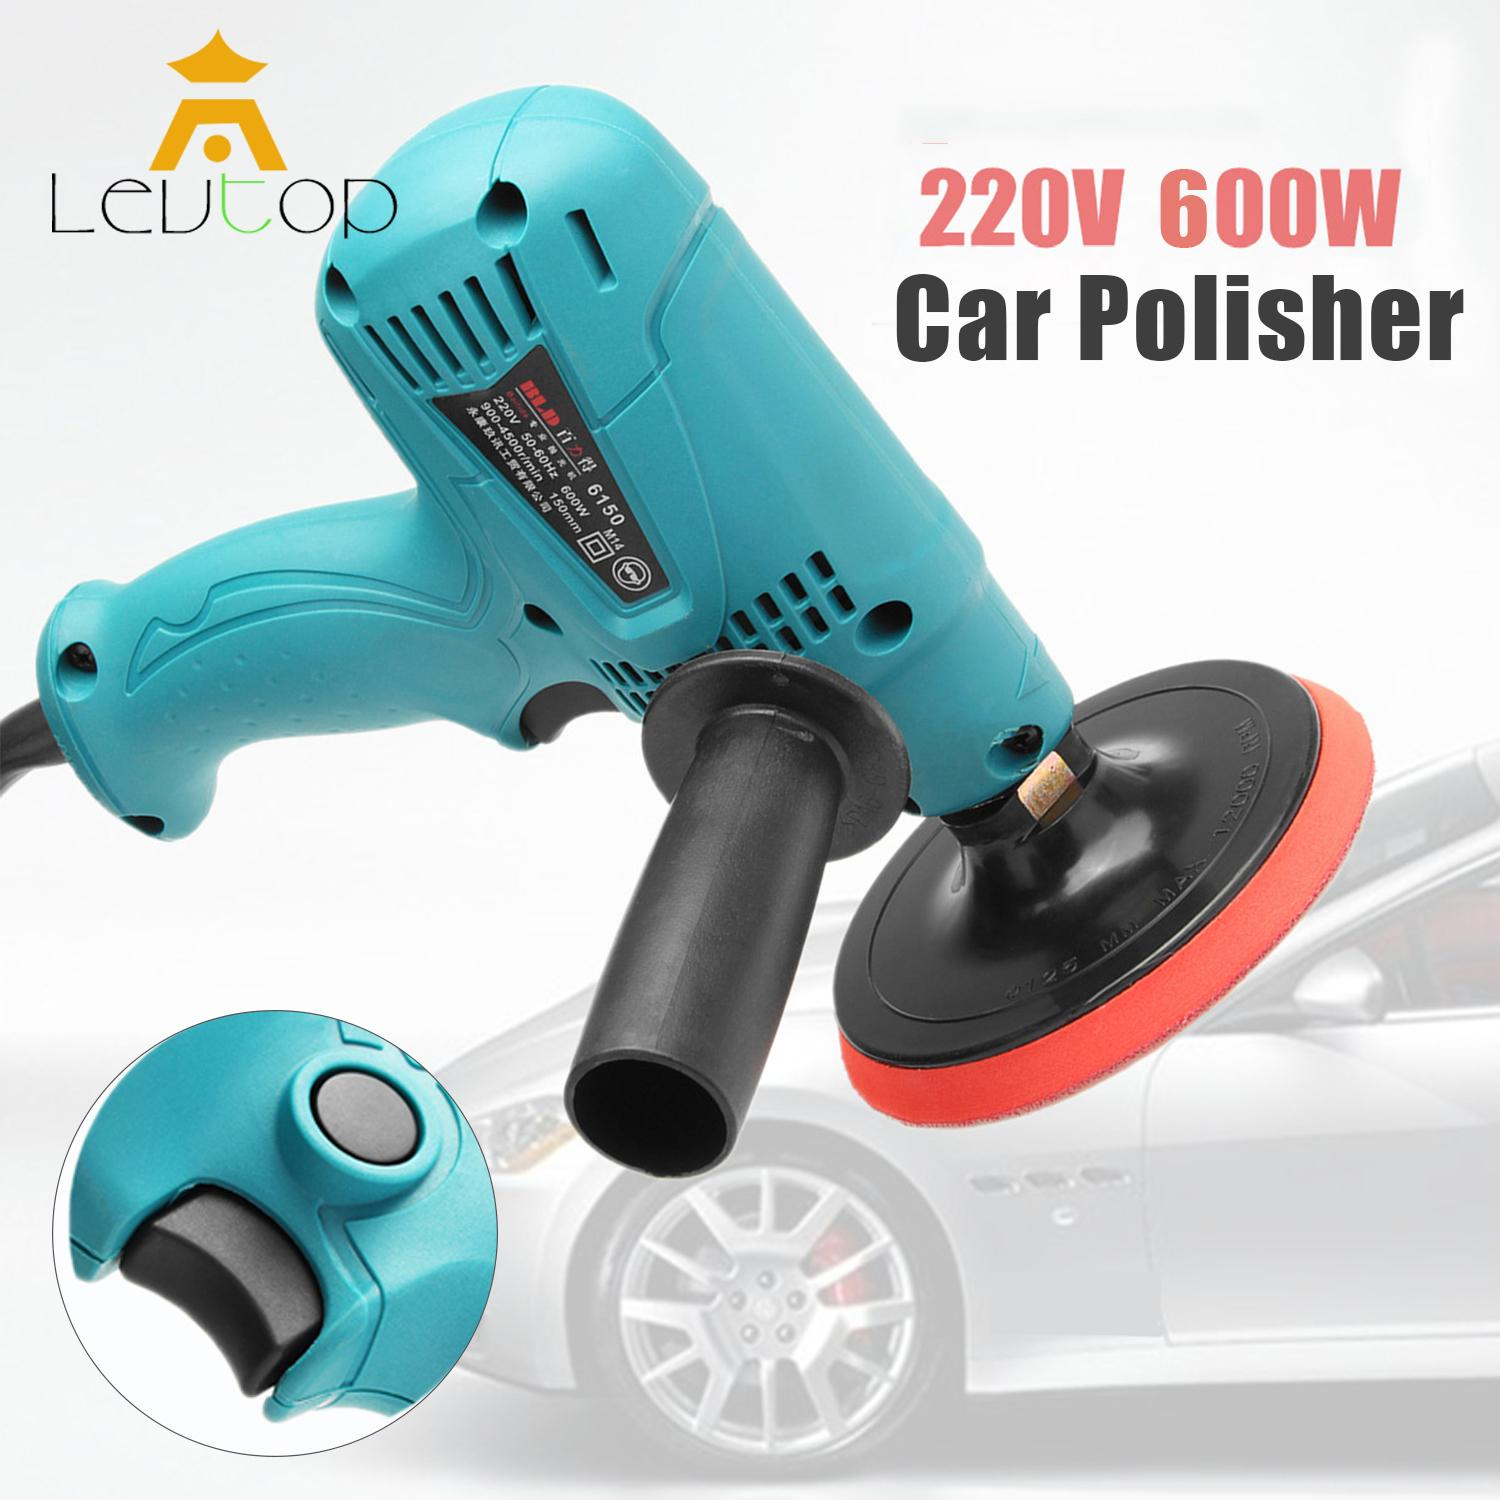 LEVTOP Car Polish Electric Car Polisher Machine Boat Polishing Sander Buffer Adjustable 6 Speed for Car & Household (600W)